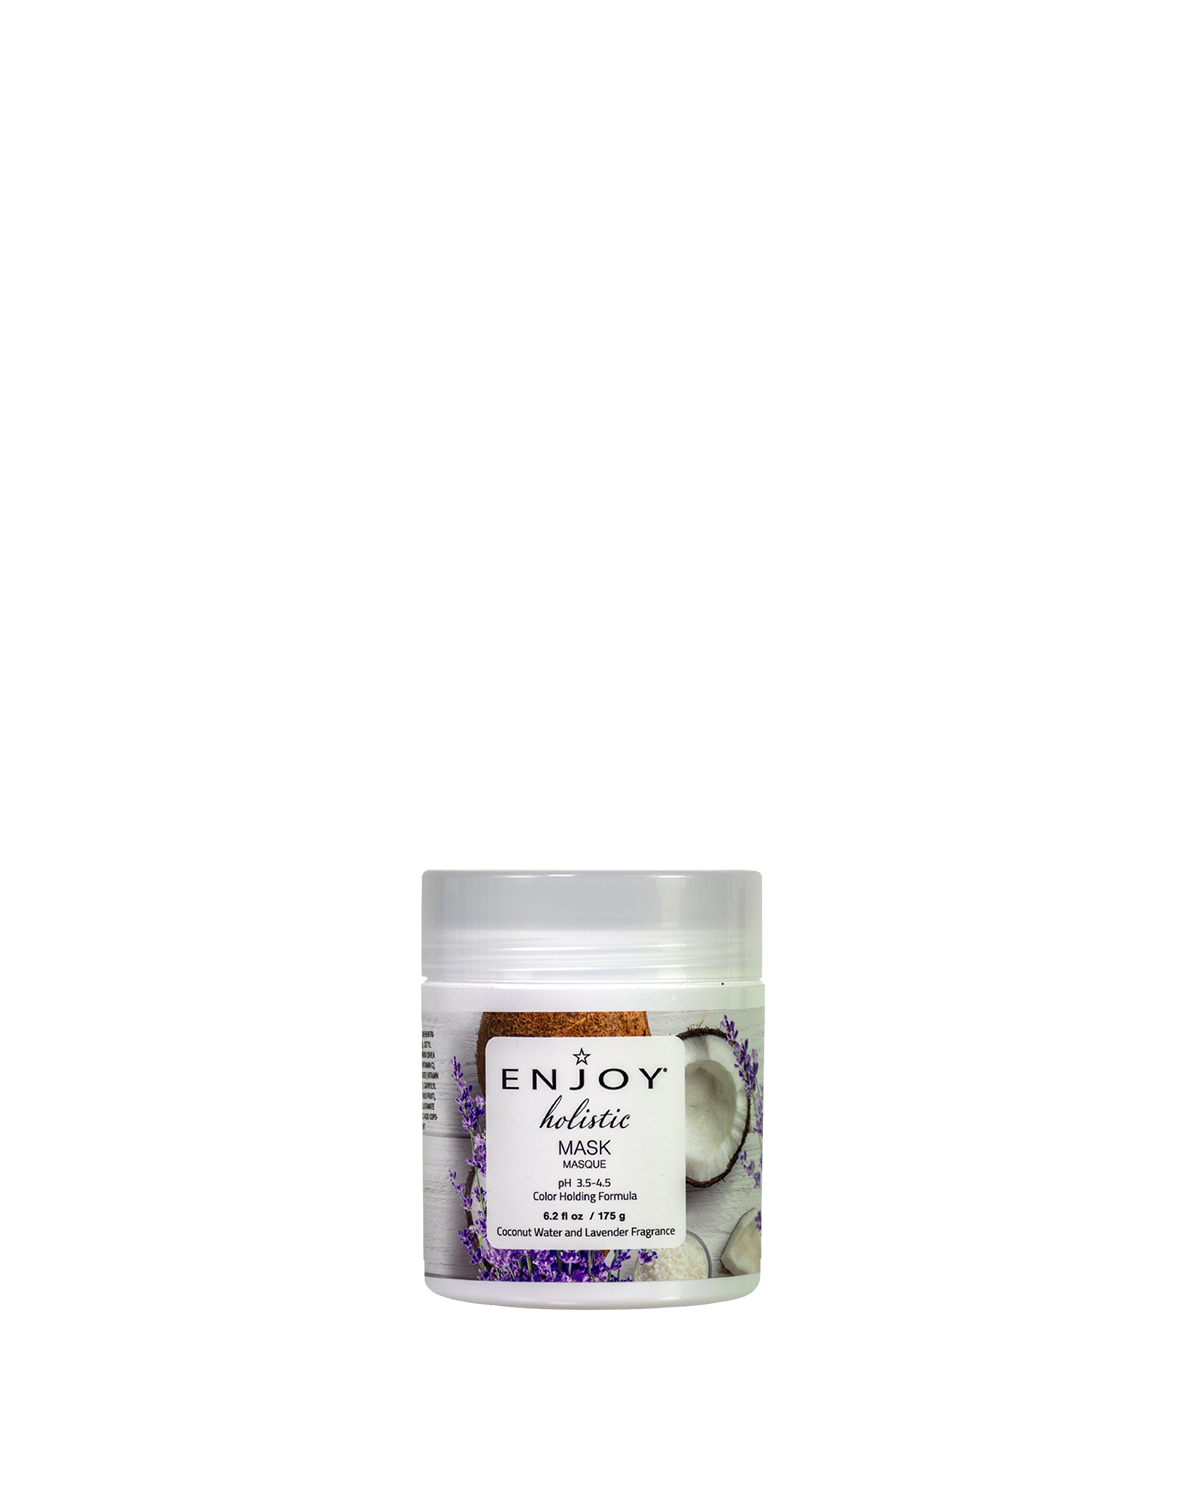 Enjoy Holistic Mask